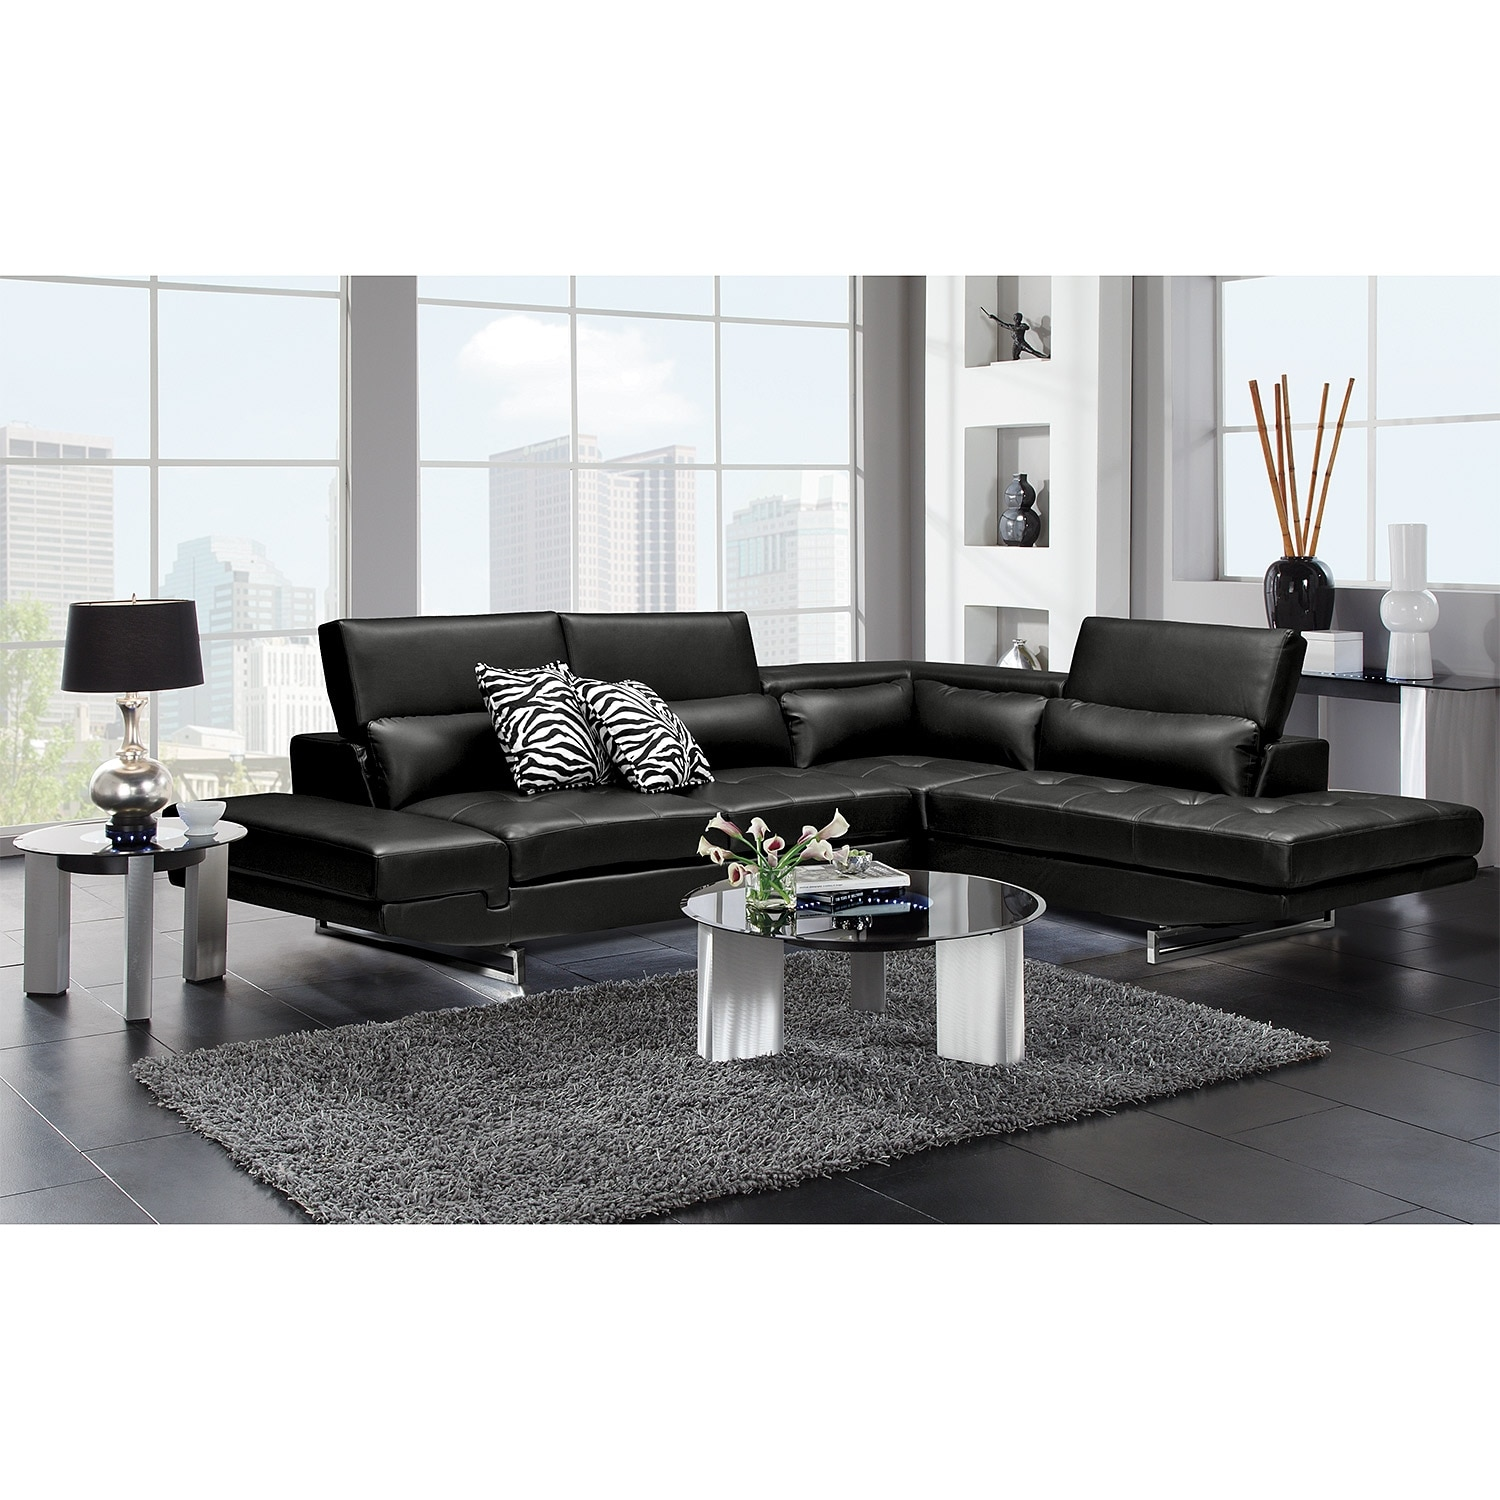 Madrid ii leather 2 pc sectional value city furniture for Furniture madrid